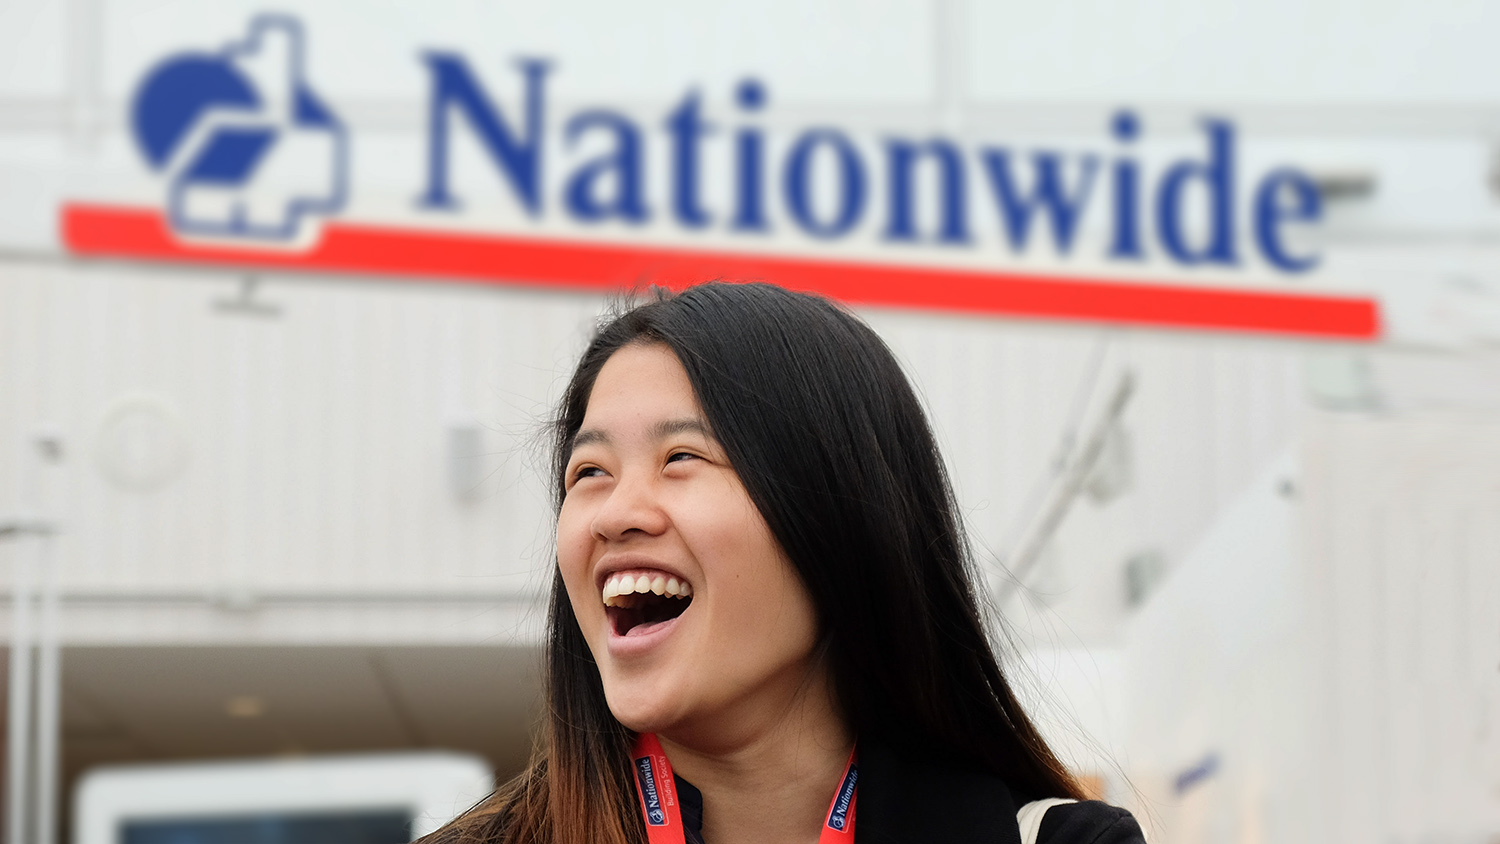 Natasha Yip outside the Nationwide building in Swindon